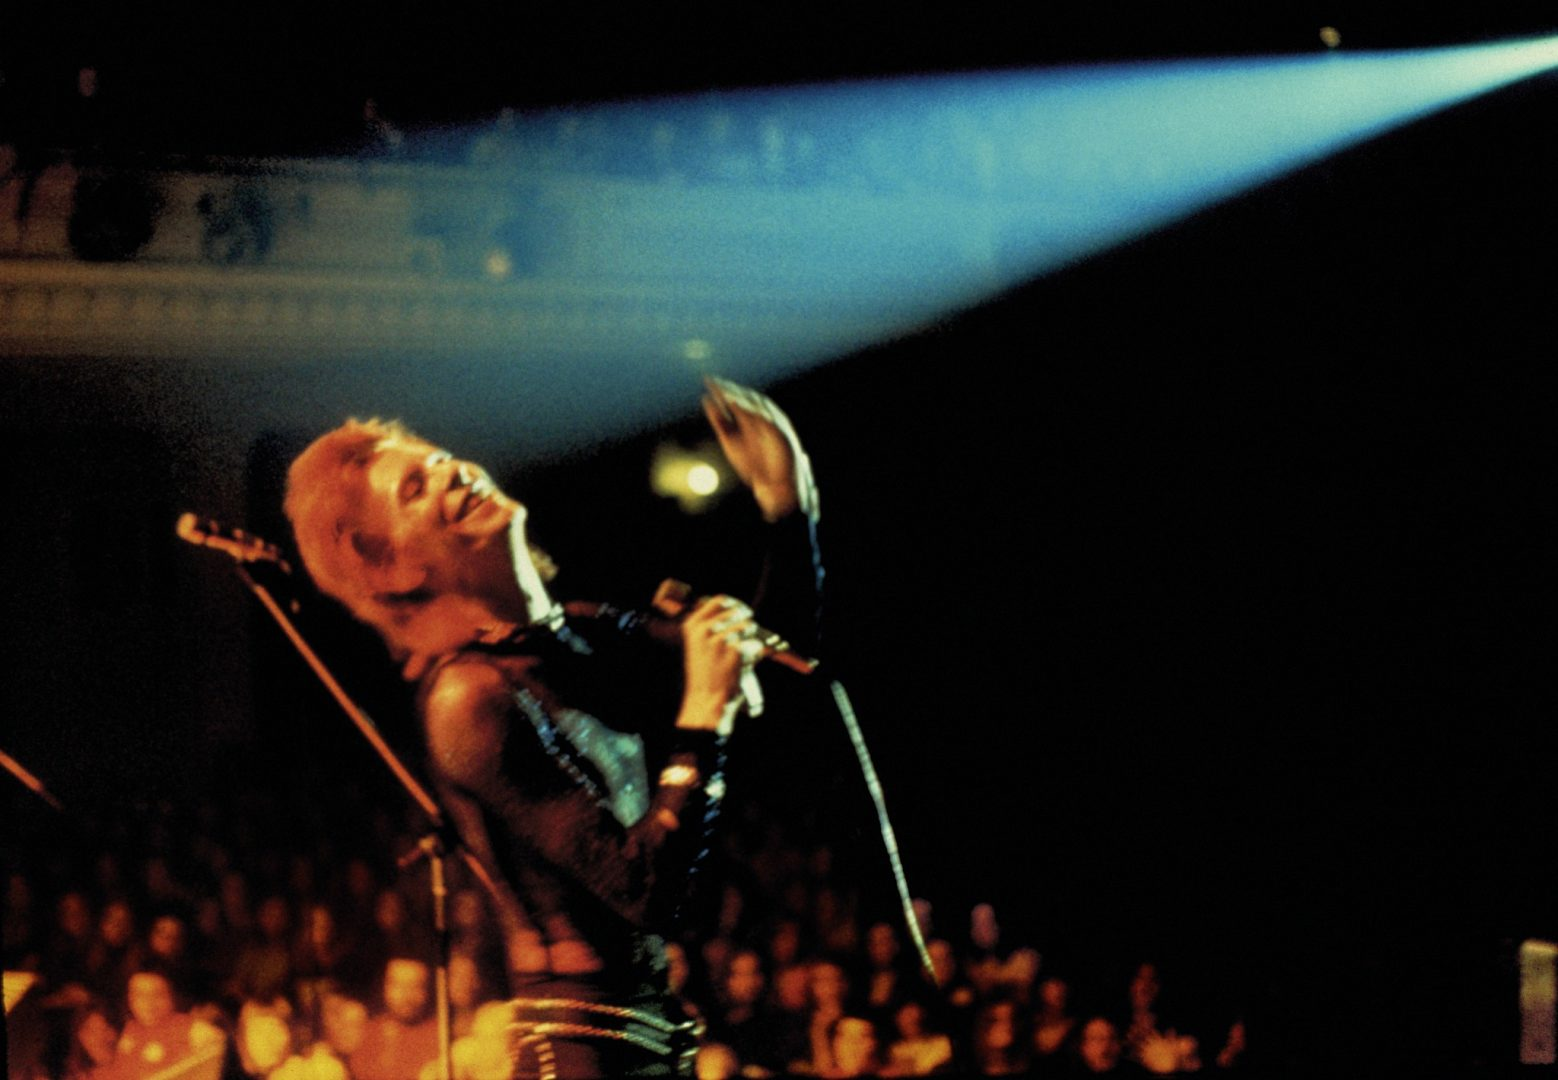 David Bowie on stage in Bournemouth from Mick Rock's book